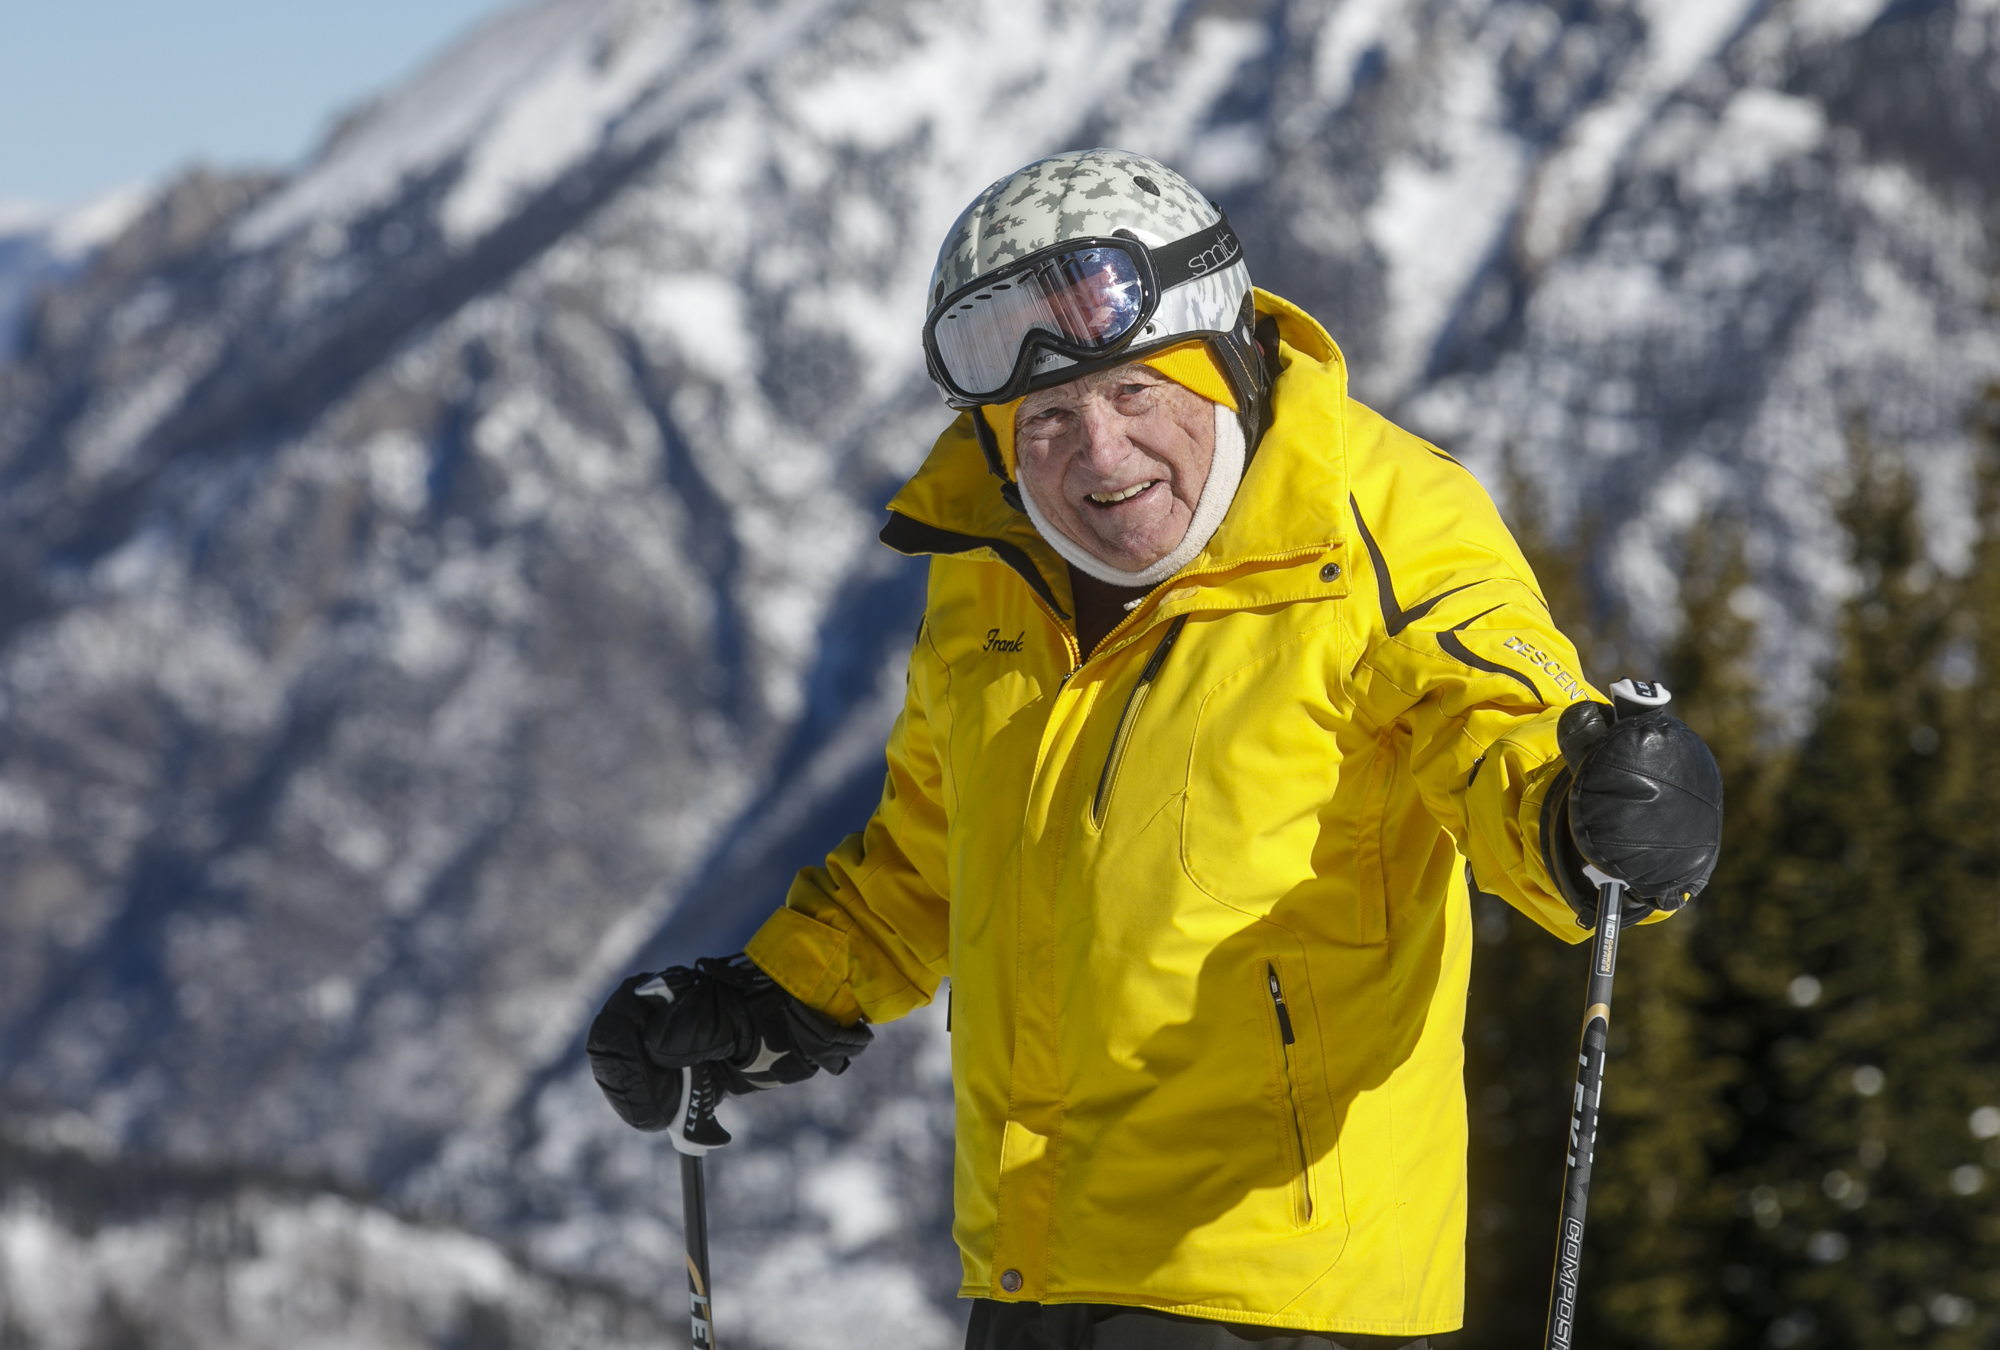 photo - Frank Walters skiing at Copper Mountain Wednesday, Jan. 17.